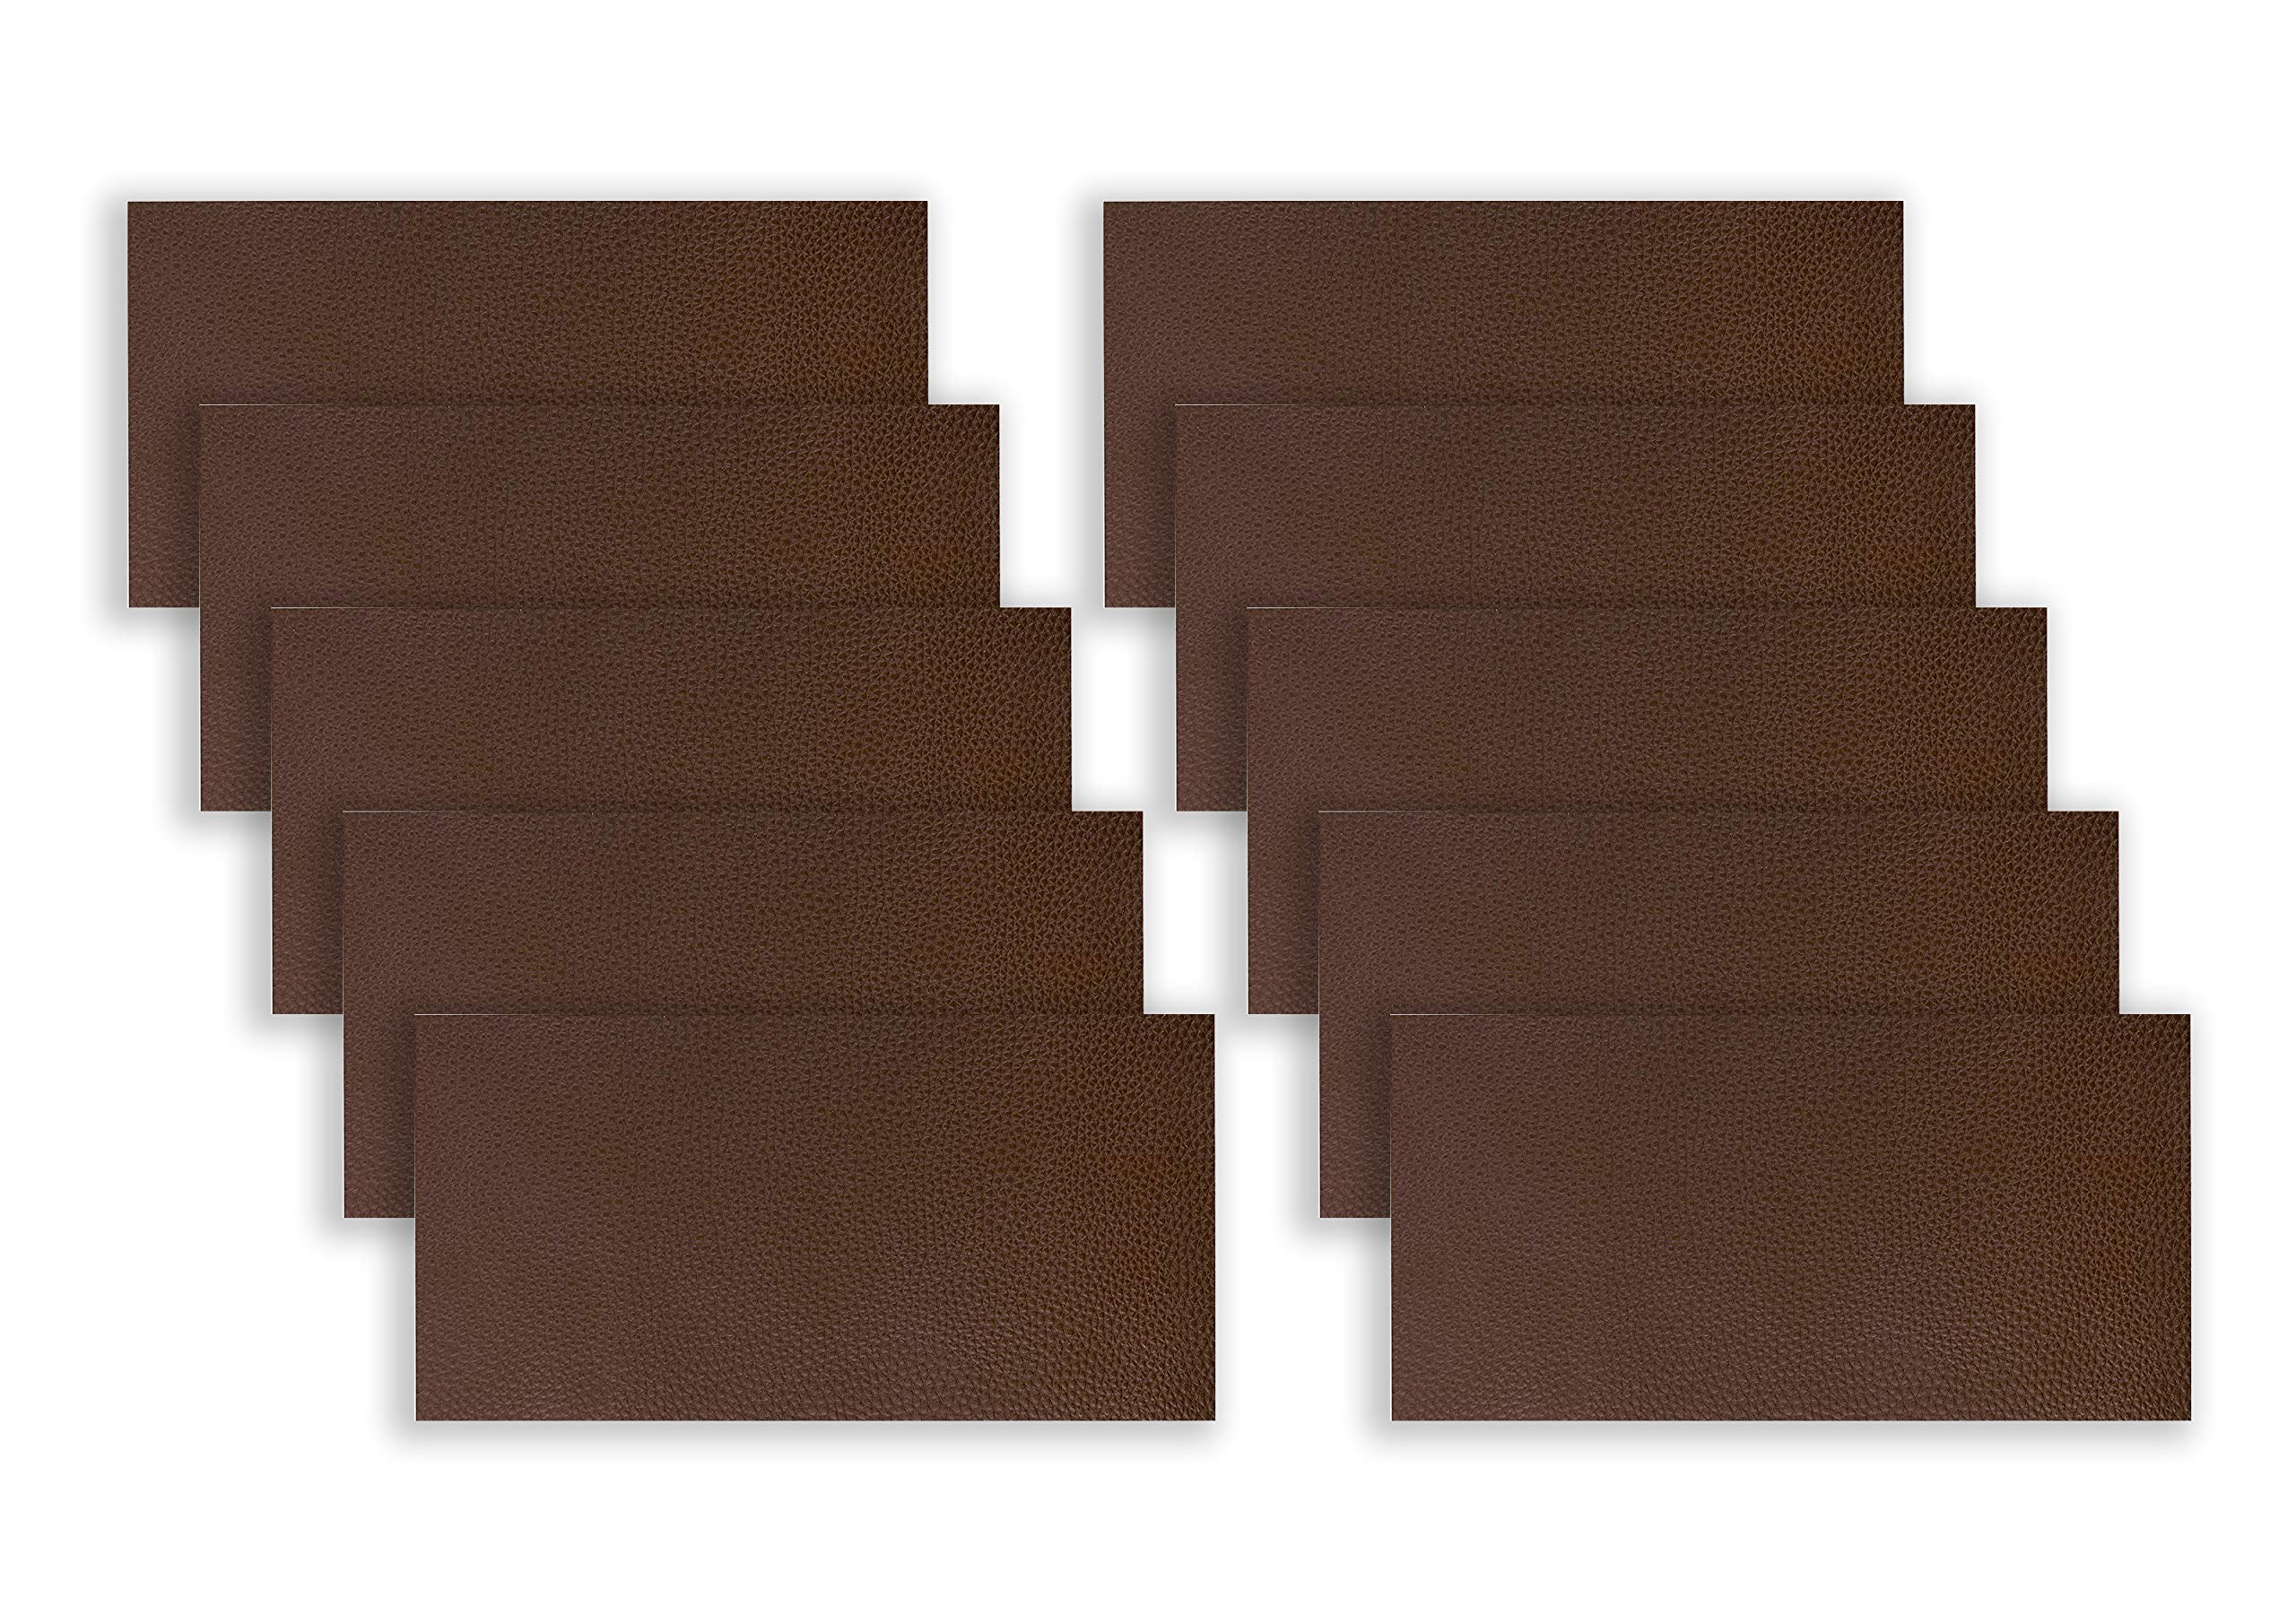 10 PCS Leather Repair Patch,4x8 inch Leather Adhesive Kit for Couch Furniture Sofas Car Seats Handbags Jackets (Dark Brown) by Medou